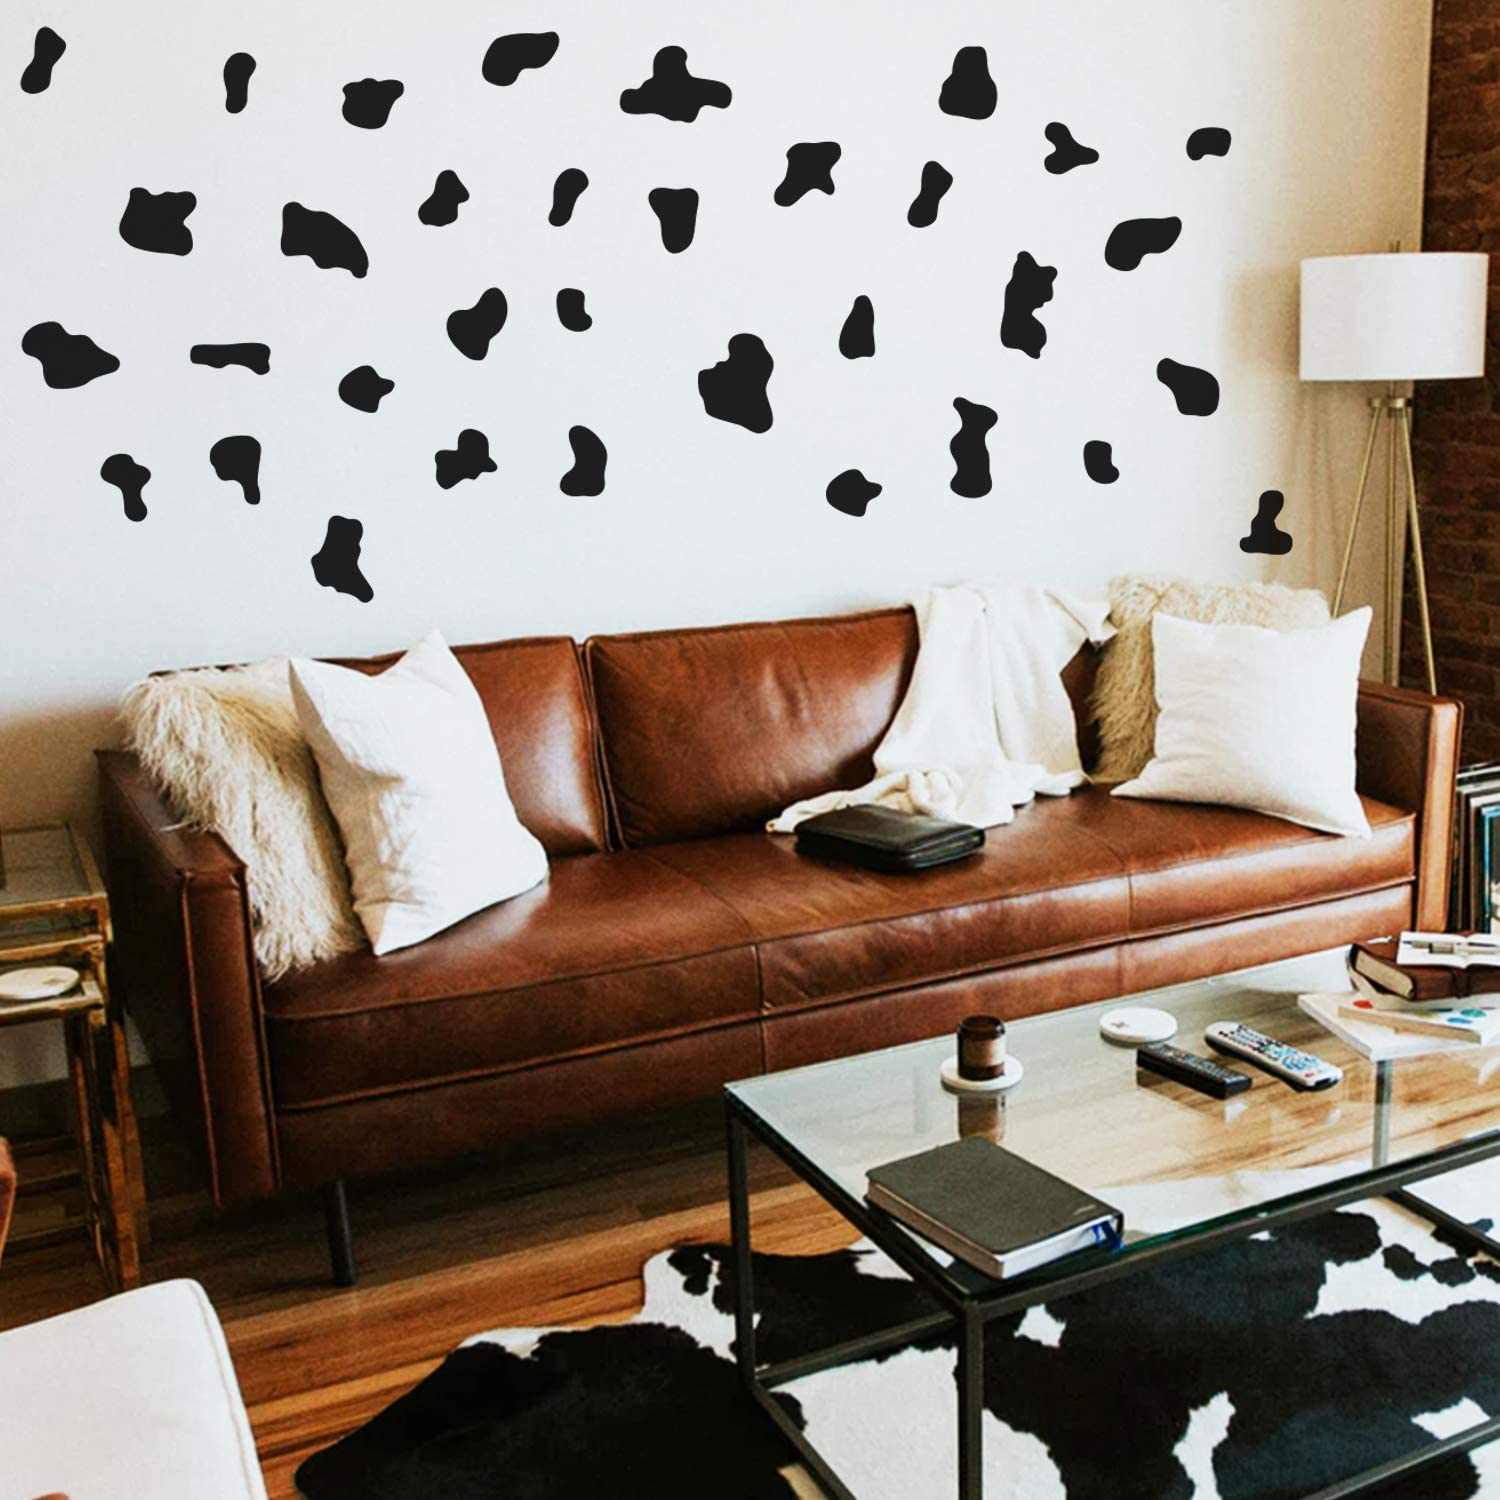 Set Of 34 Vinyl Wall Art Decal Cow Pattern From 2 X 2 Each Cows Spots Adhesive Stickers Animal Design For Girls Bedroom Home Office Living Room Classroom